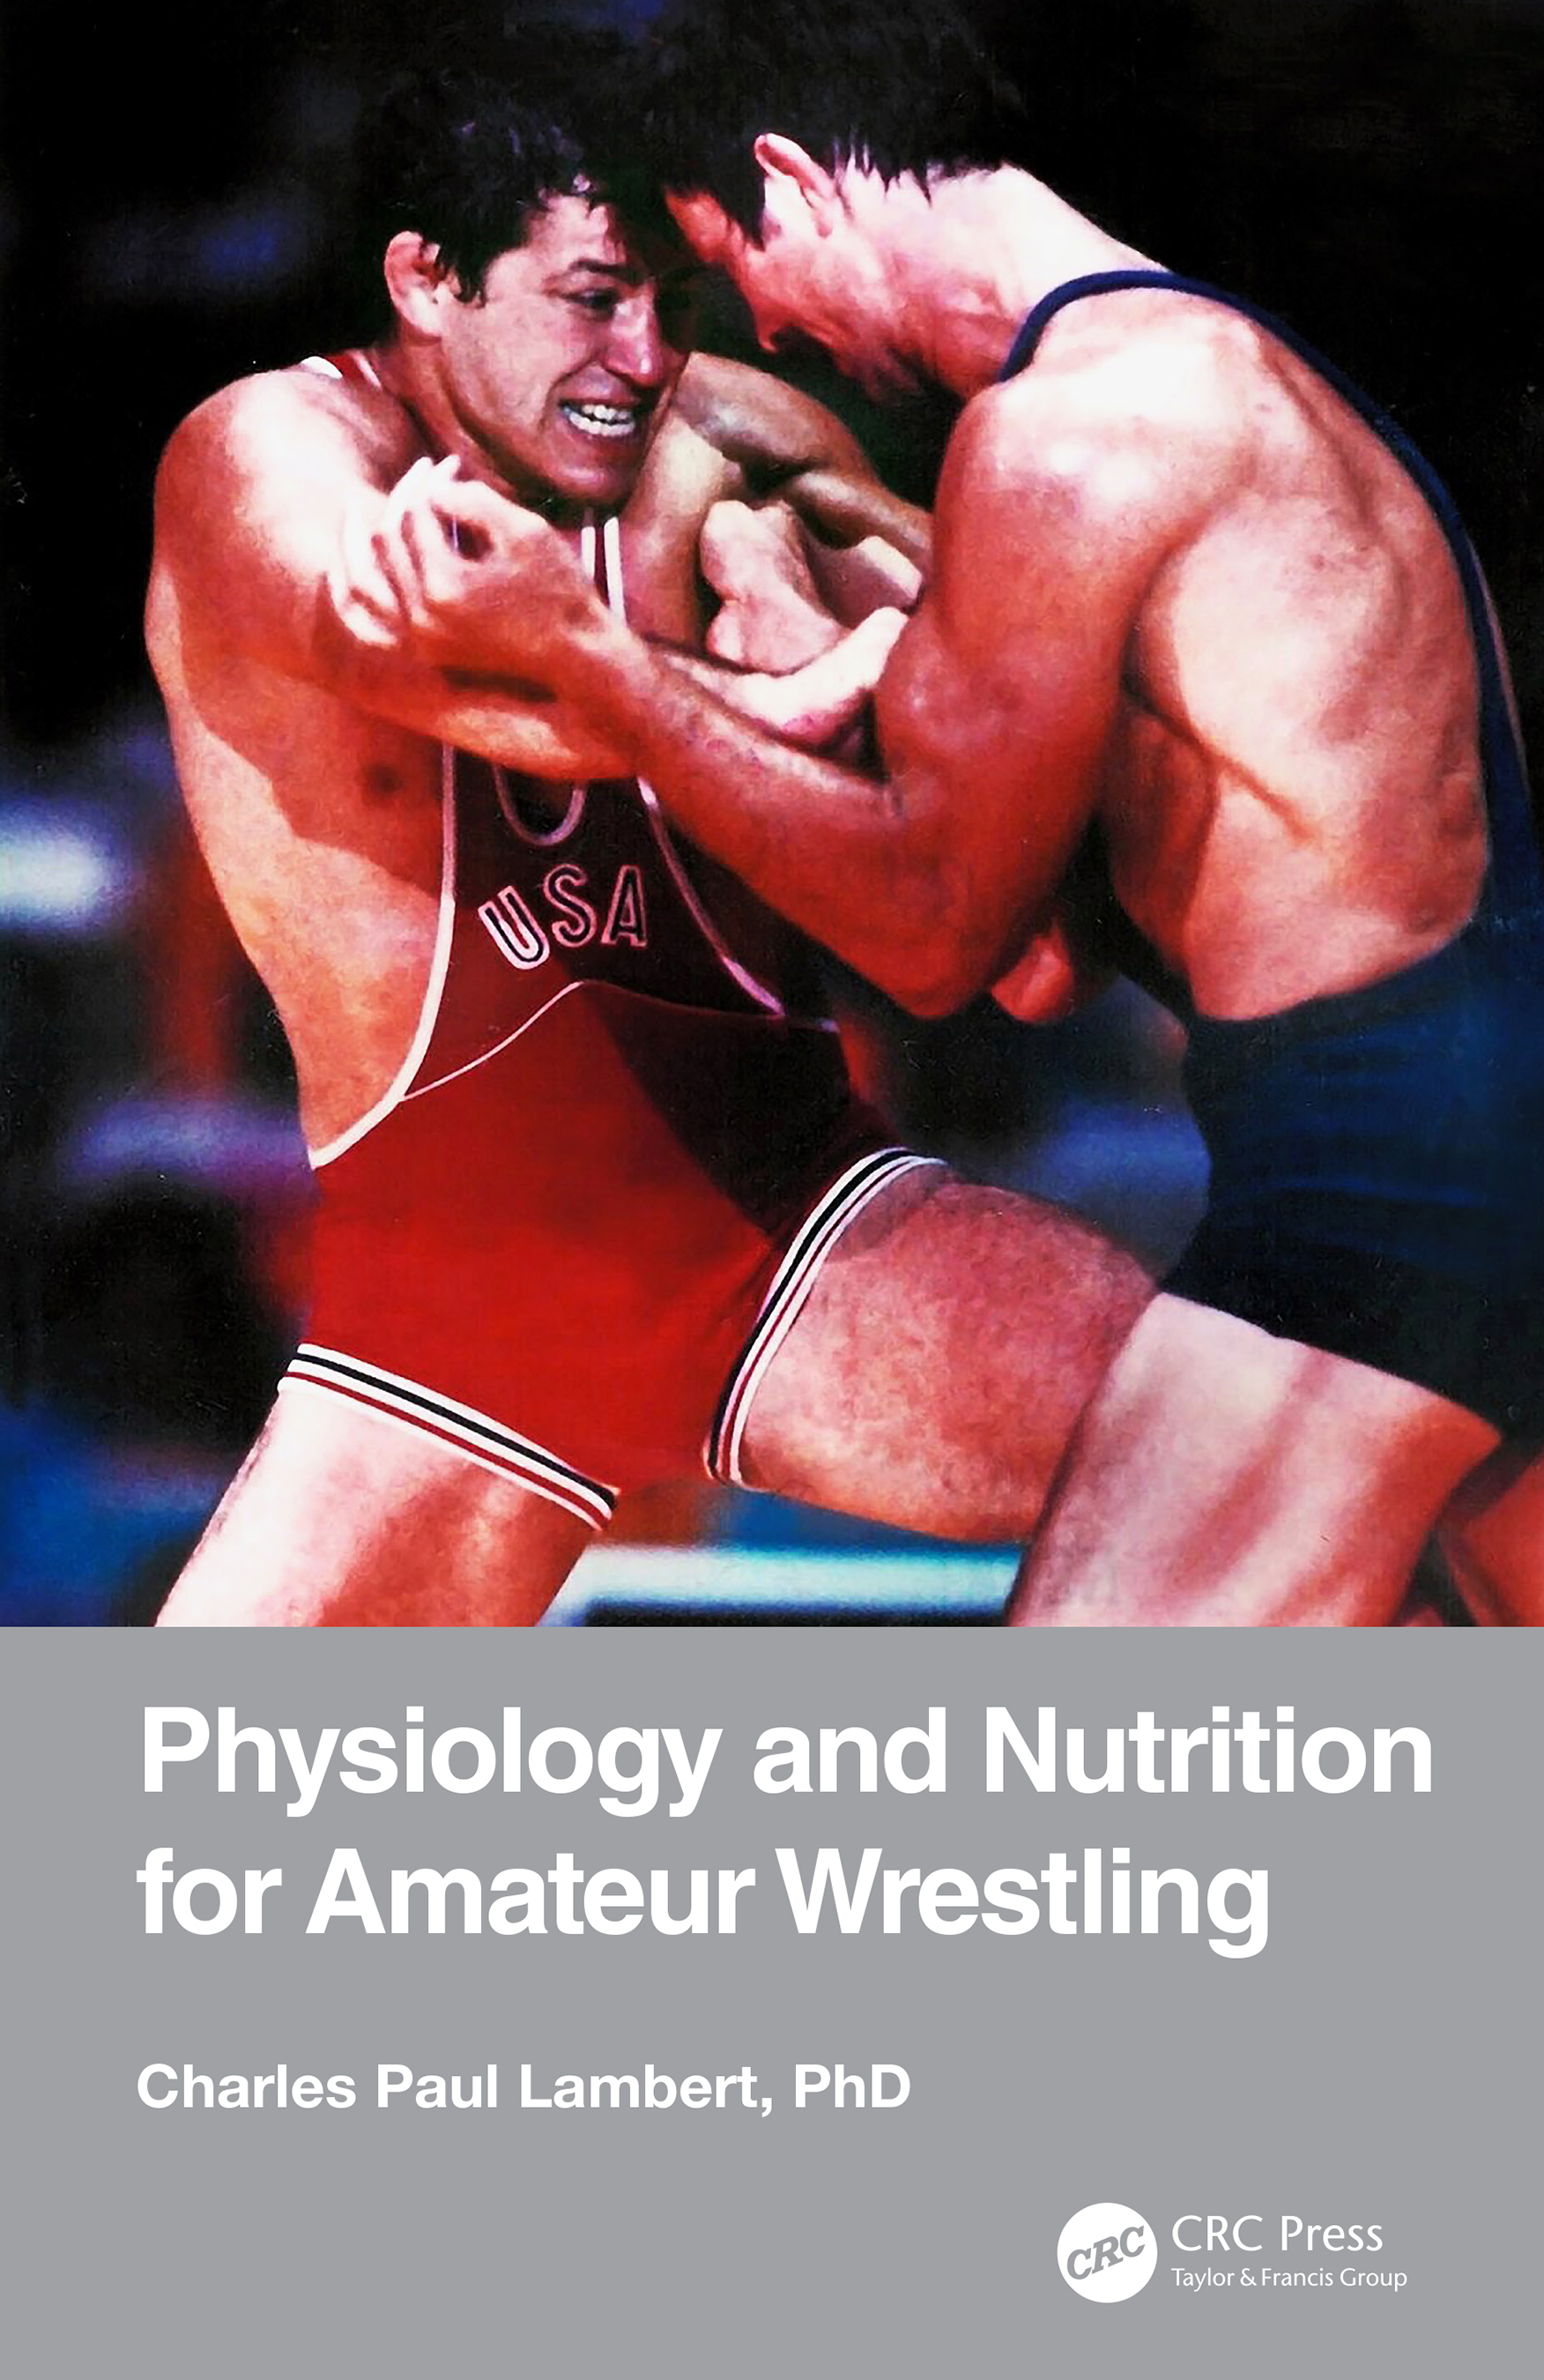 Physiology and Nutrition for Amateur Wrestling